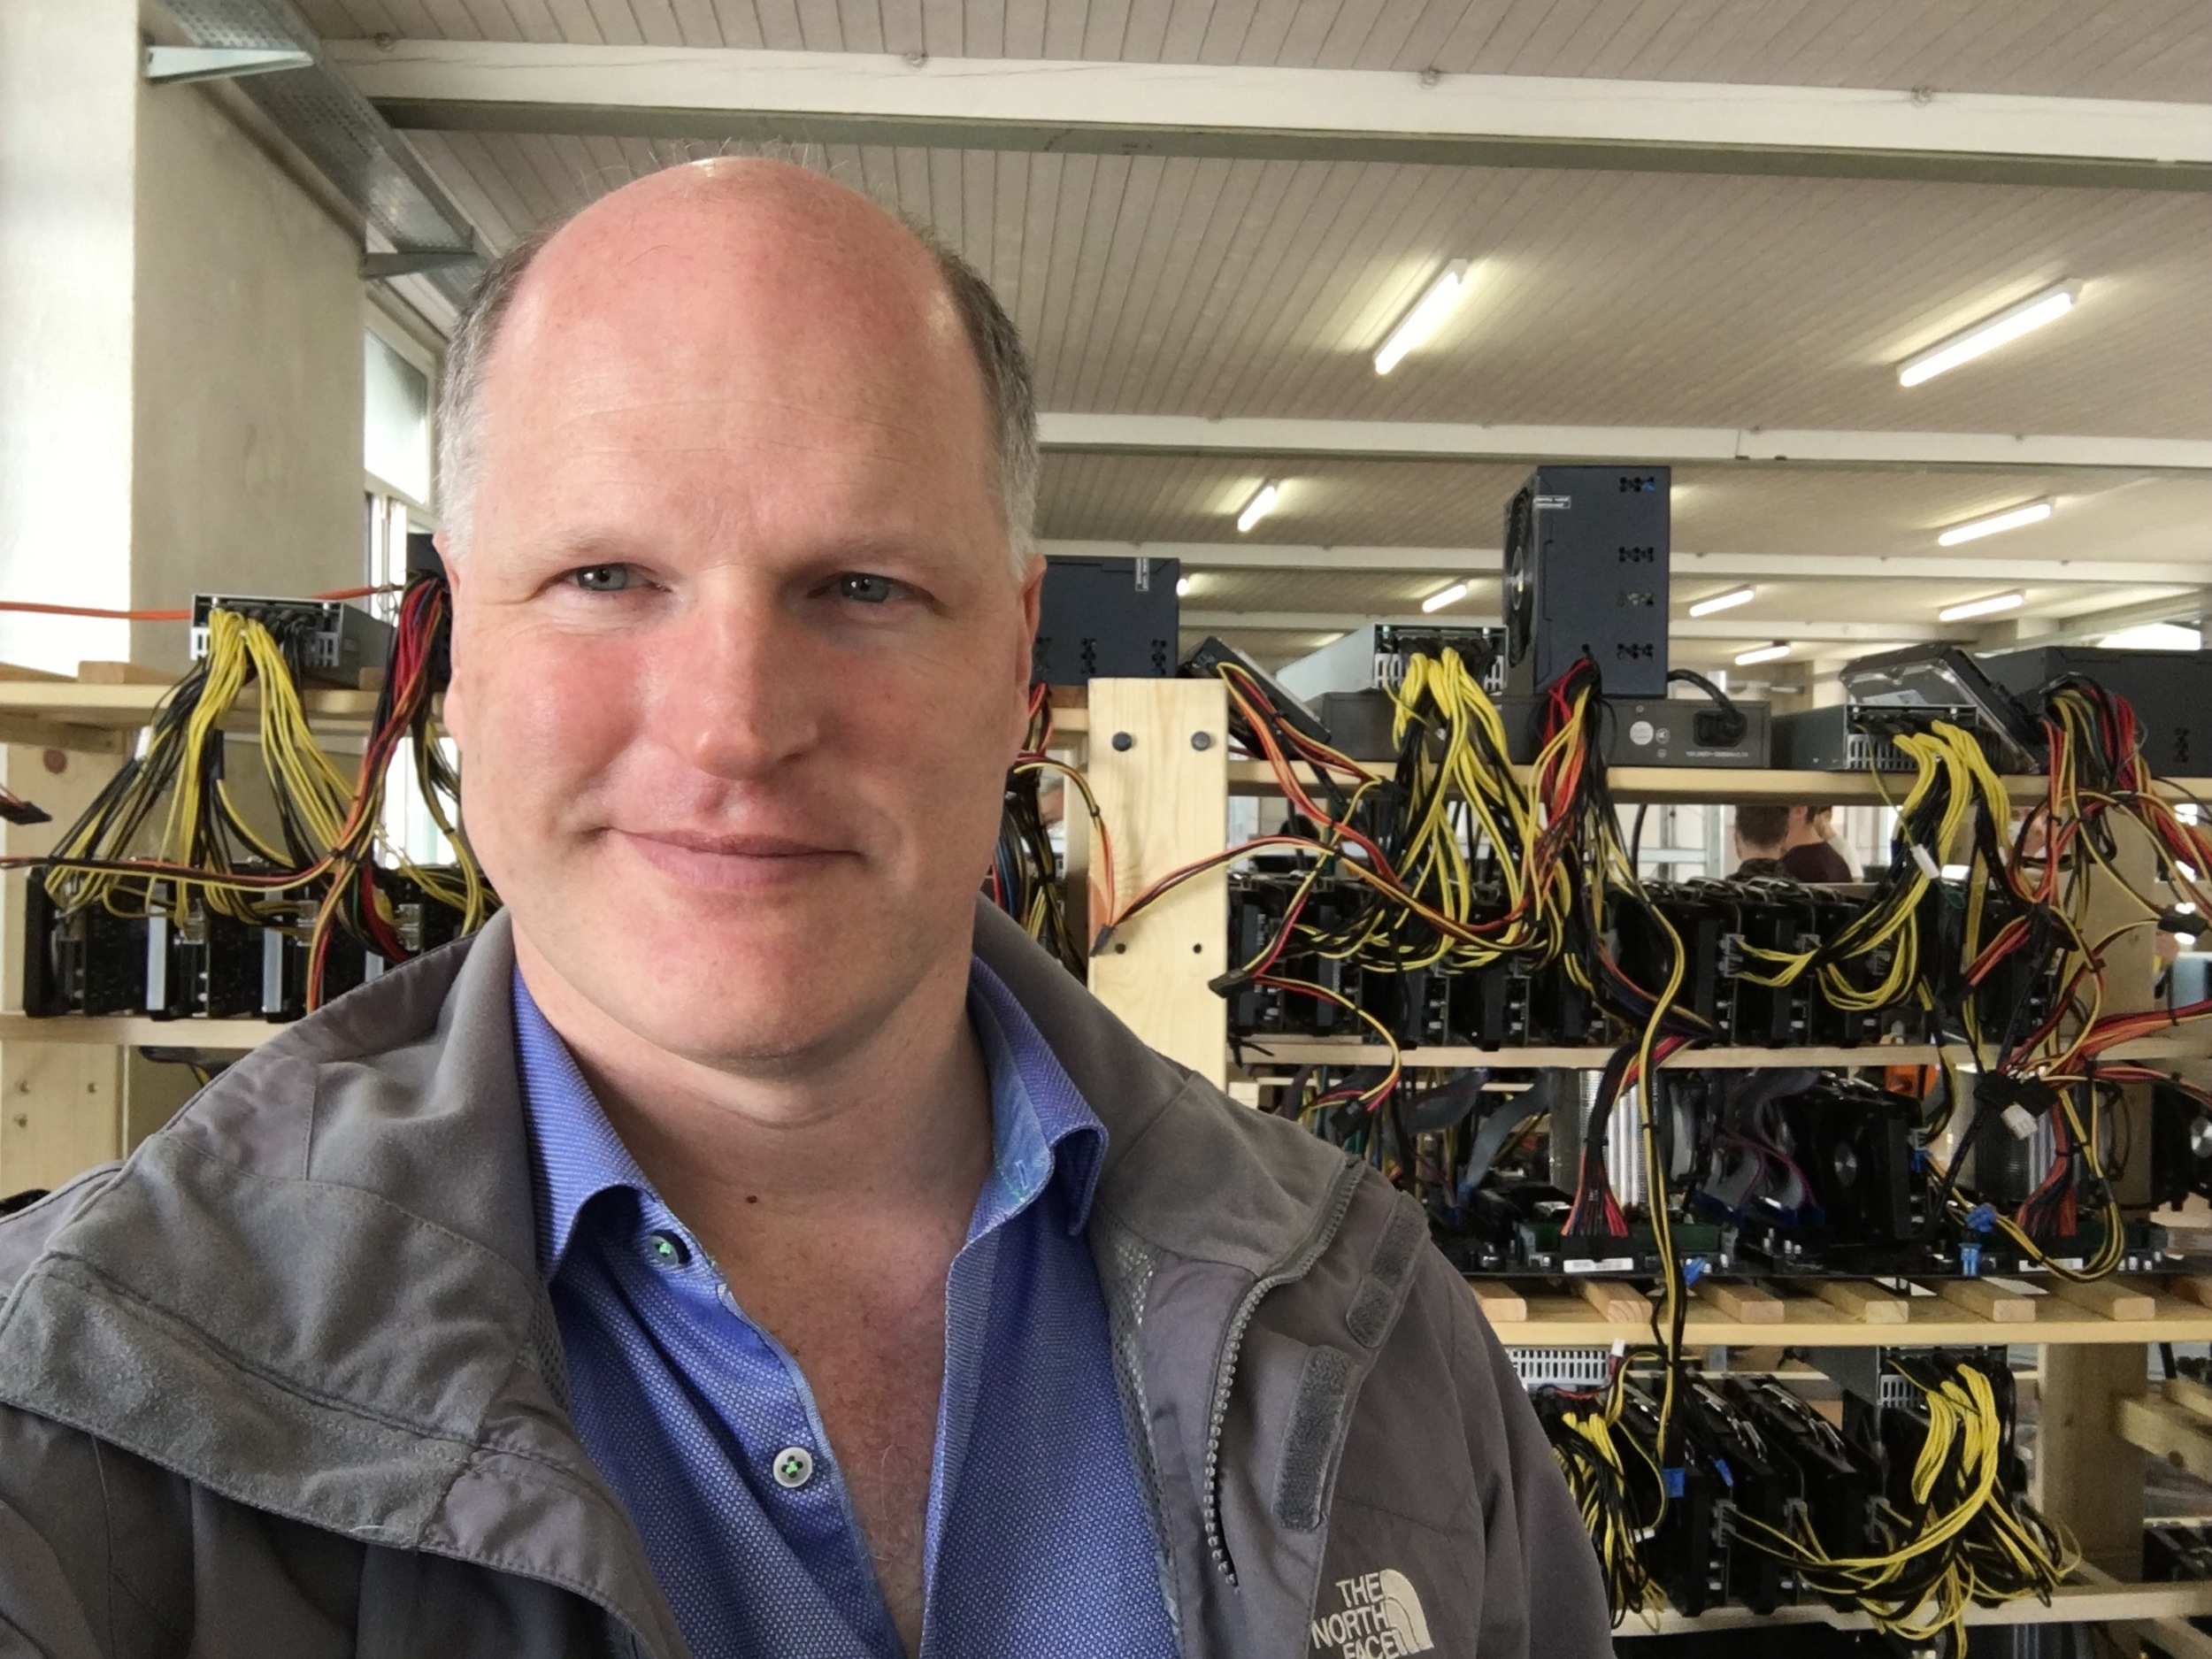 Visiting a bitcoin mine, where electricity is turned into bitcoin, heat, and fan noise.